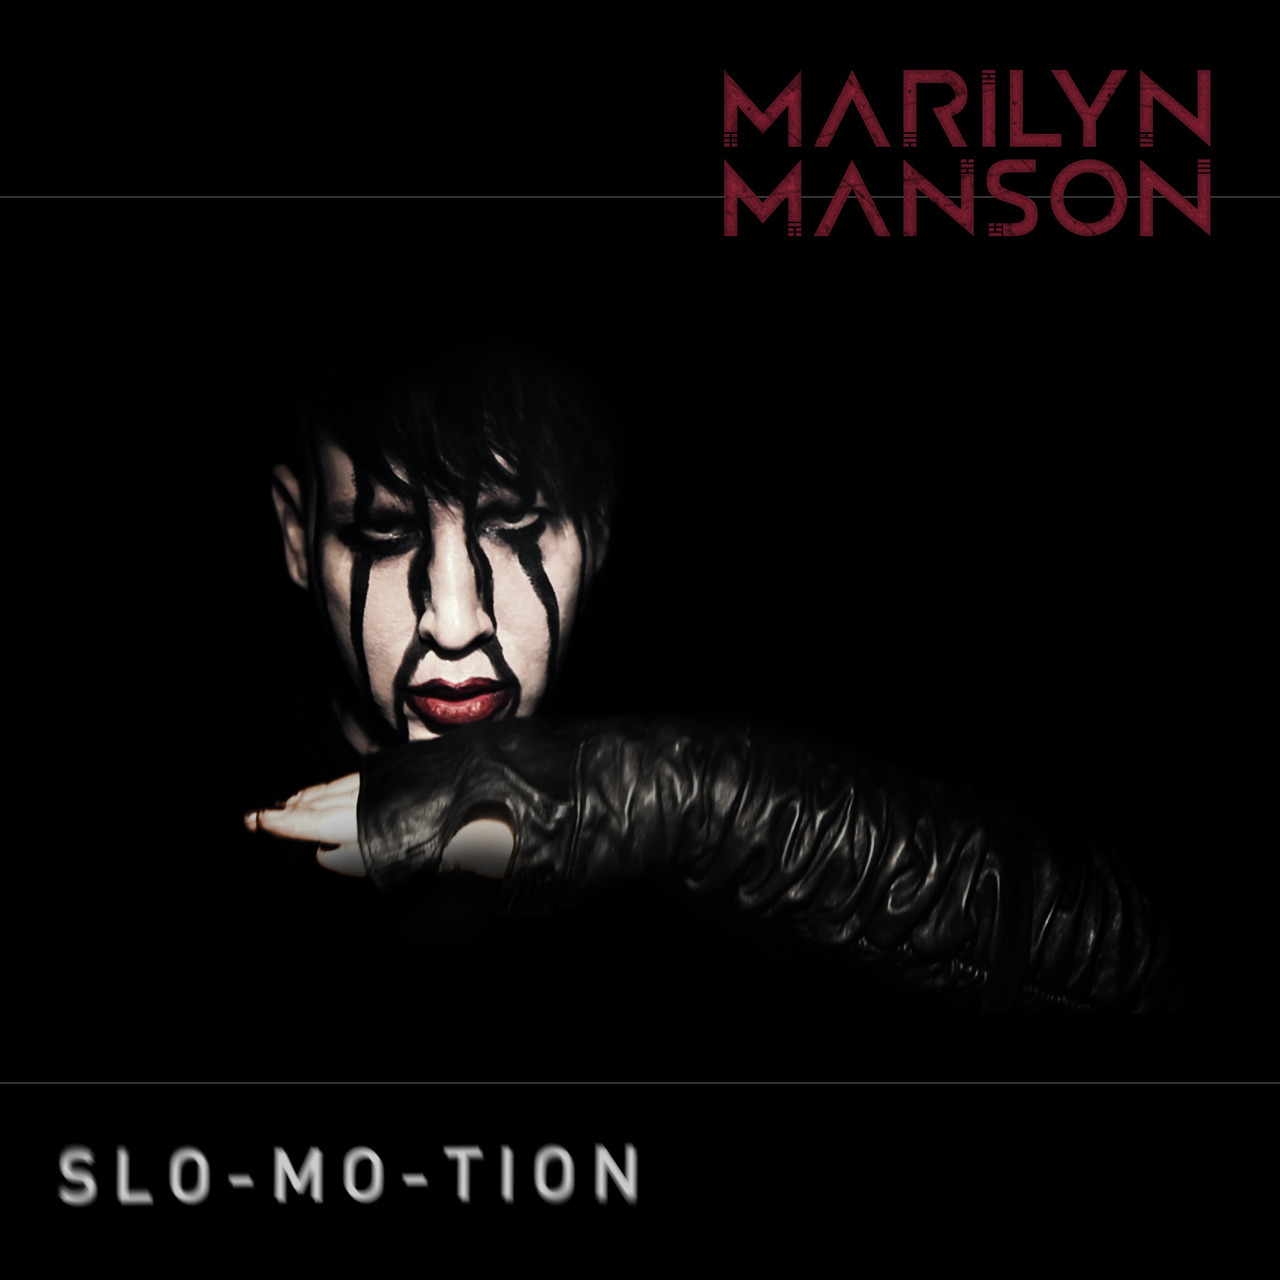 marilynmanson:  Artwork for Slo-Mo-Tion. The single will be released next week.